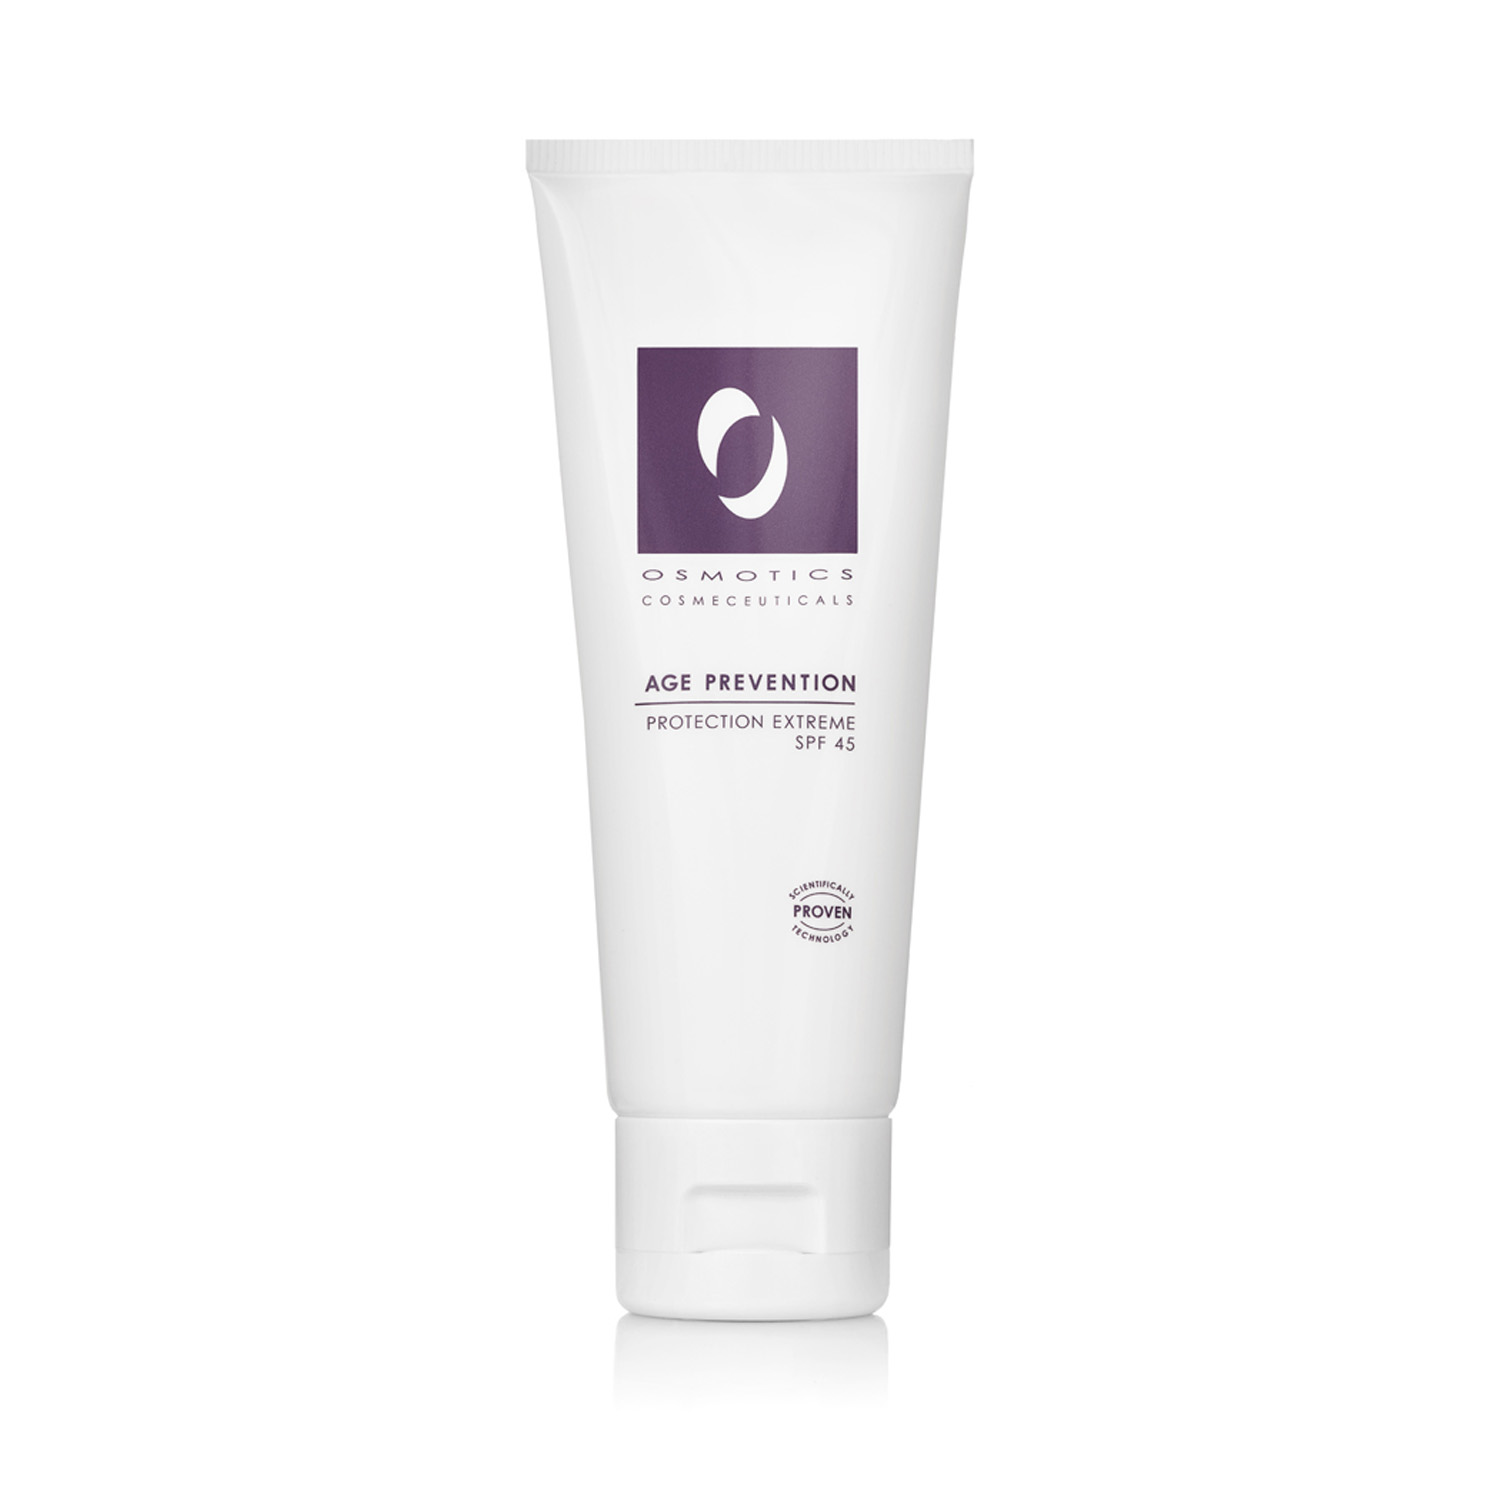 Osmotics AGE PREVENTION PROTECTION EXTREME SPF 45 (2.5 oz / 75 ml)